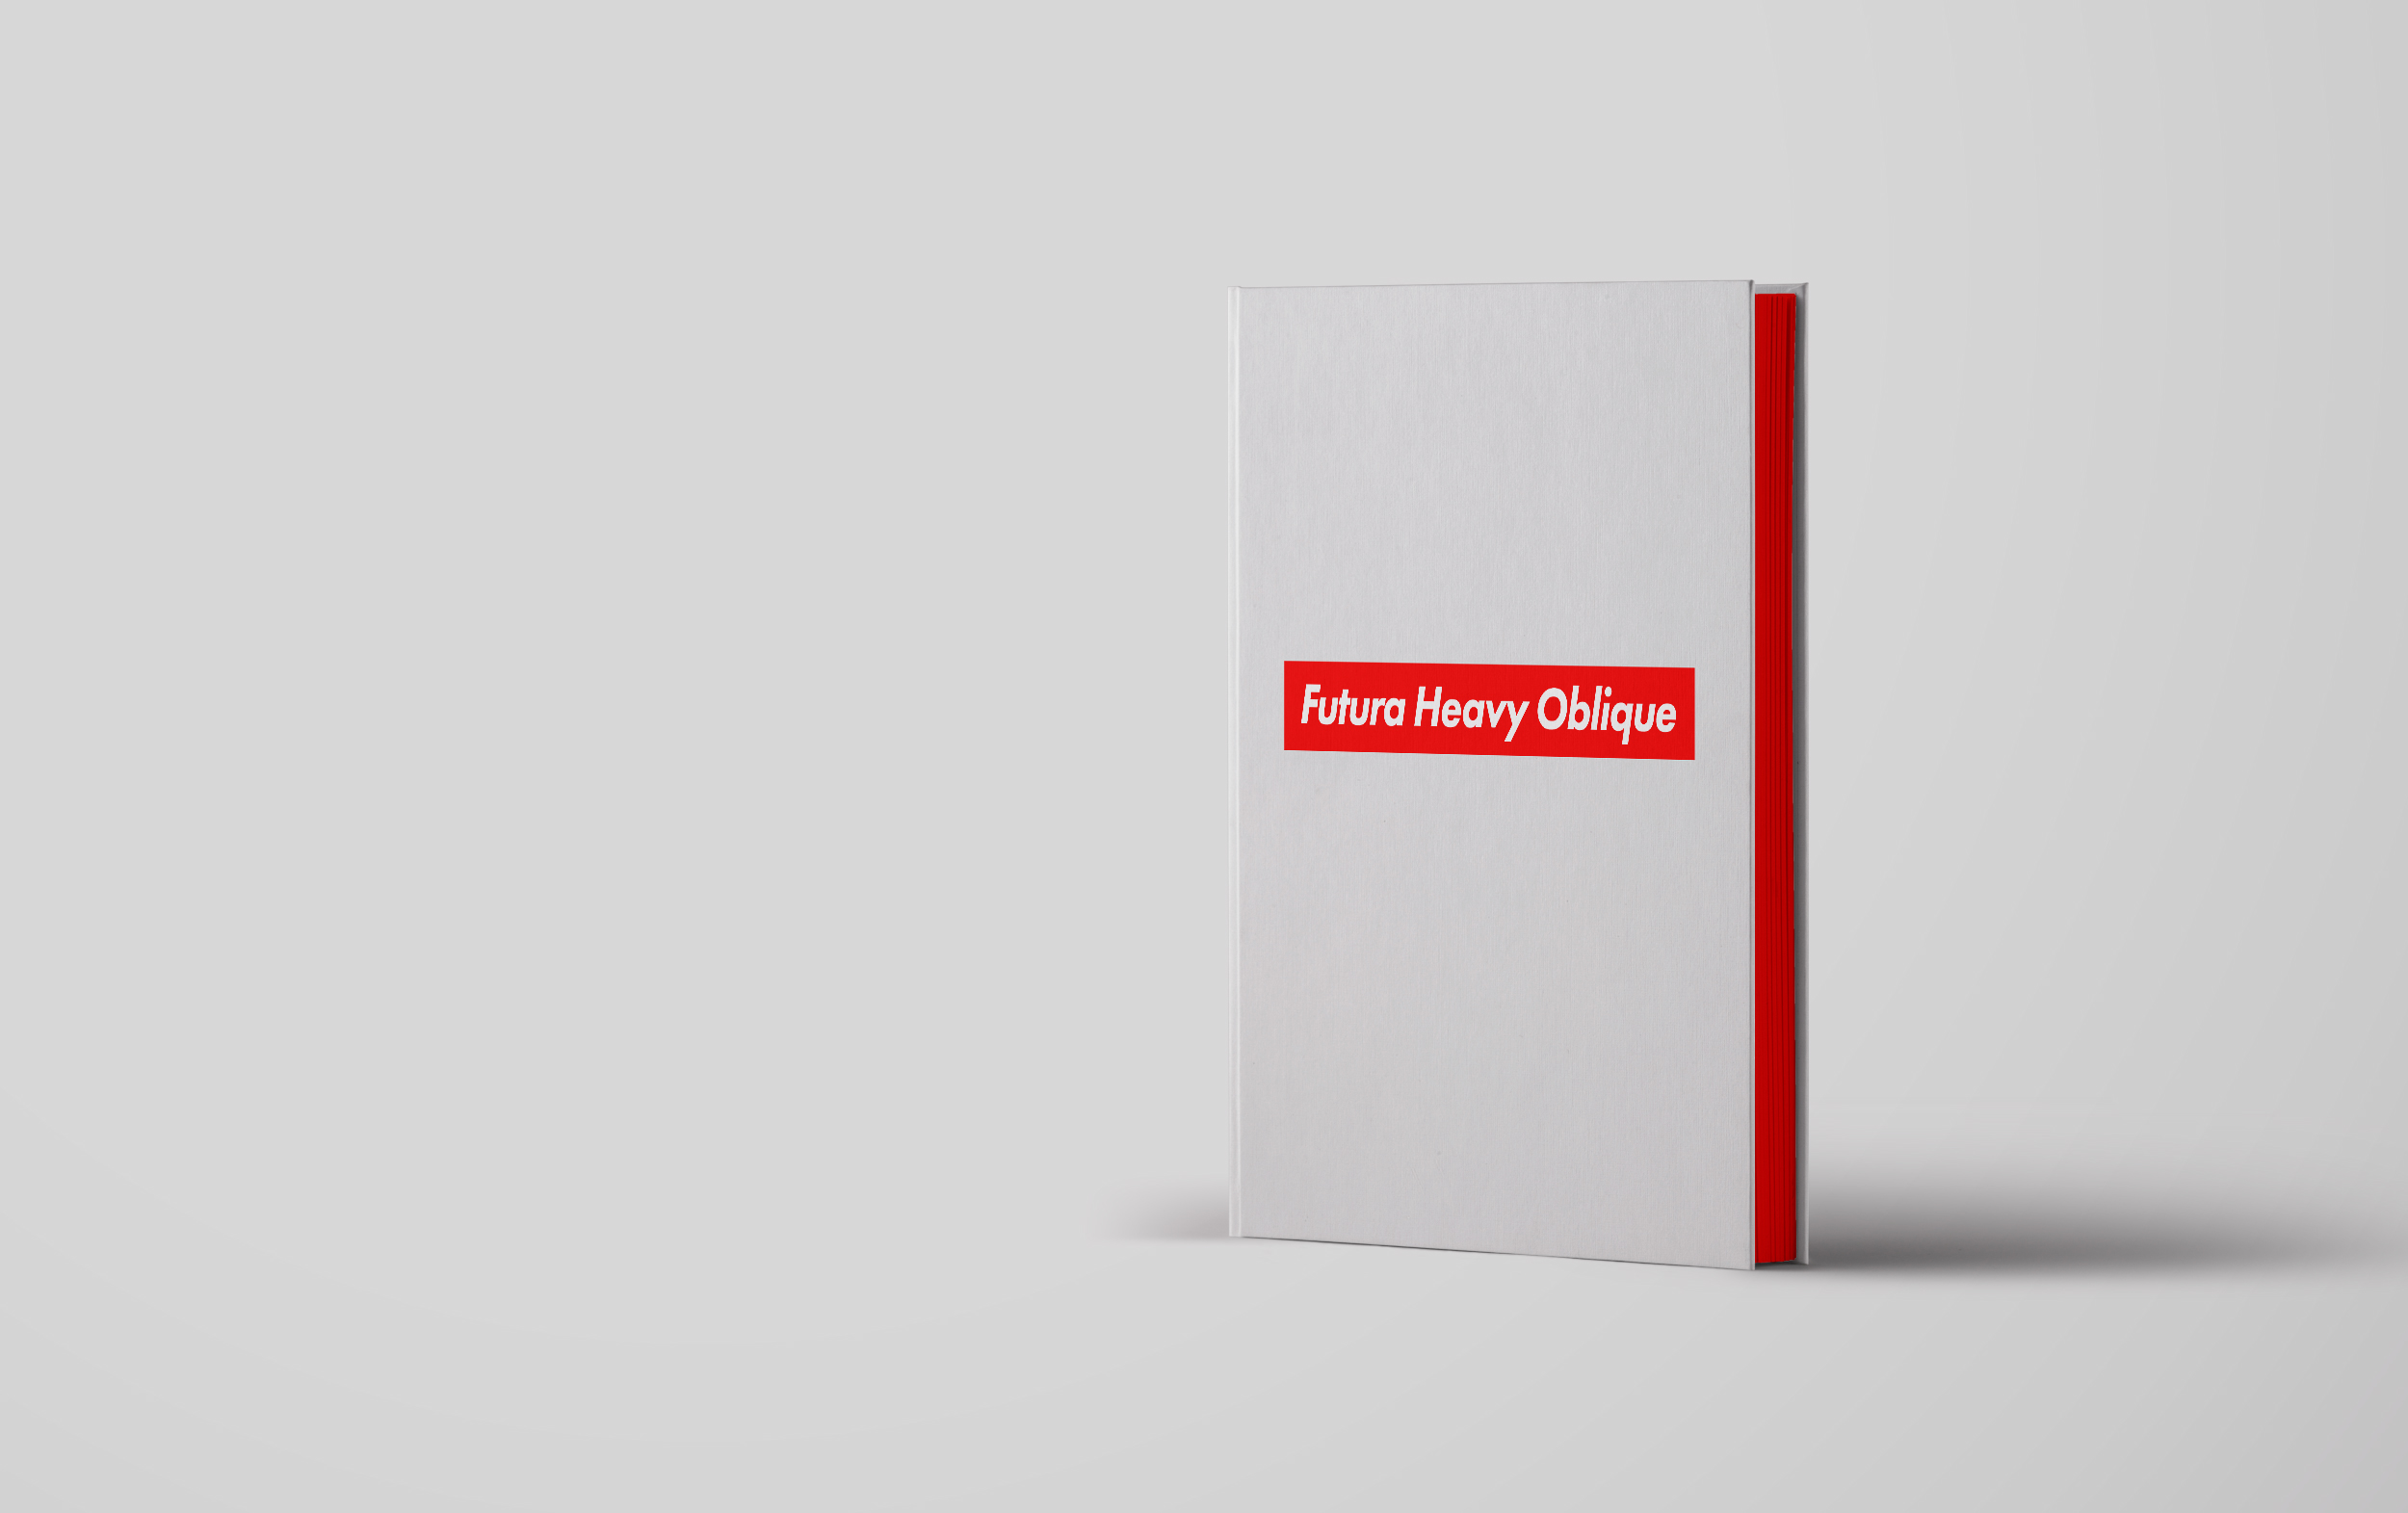 futura-heavy-oblique-book-3